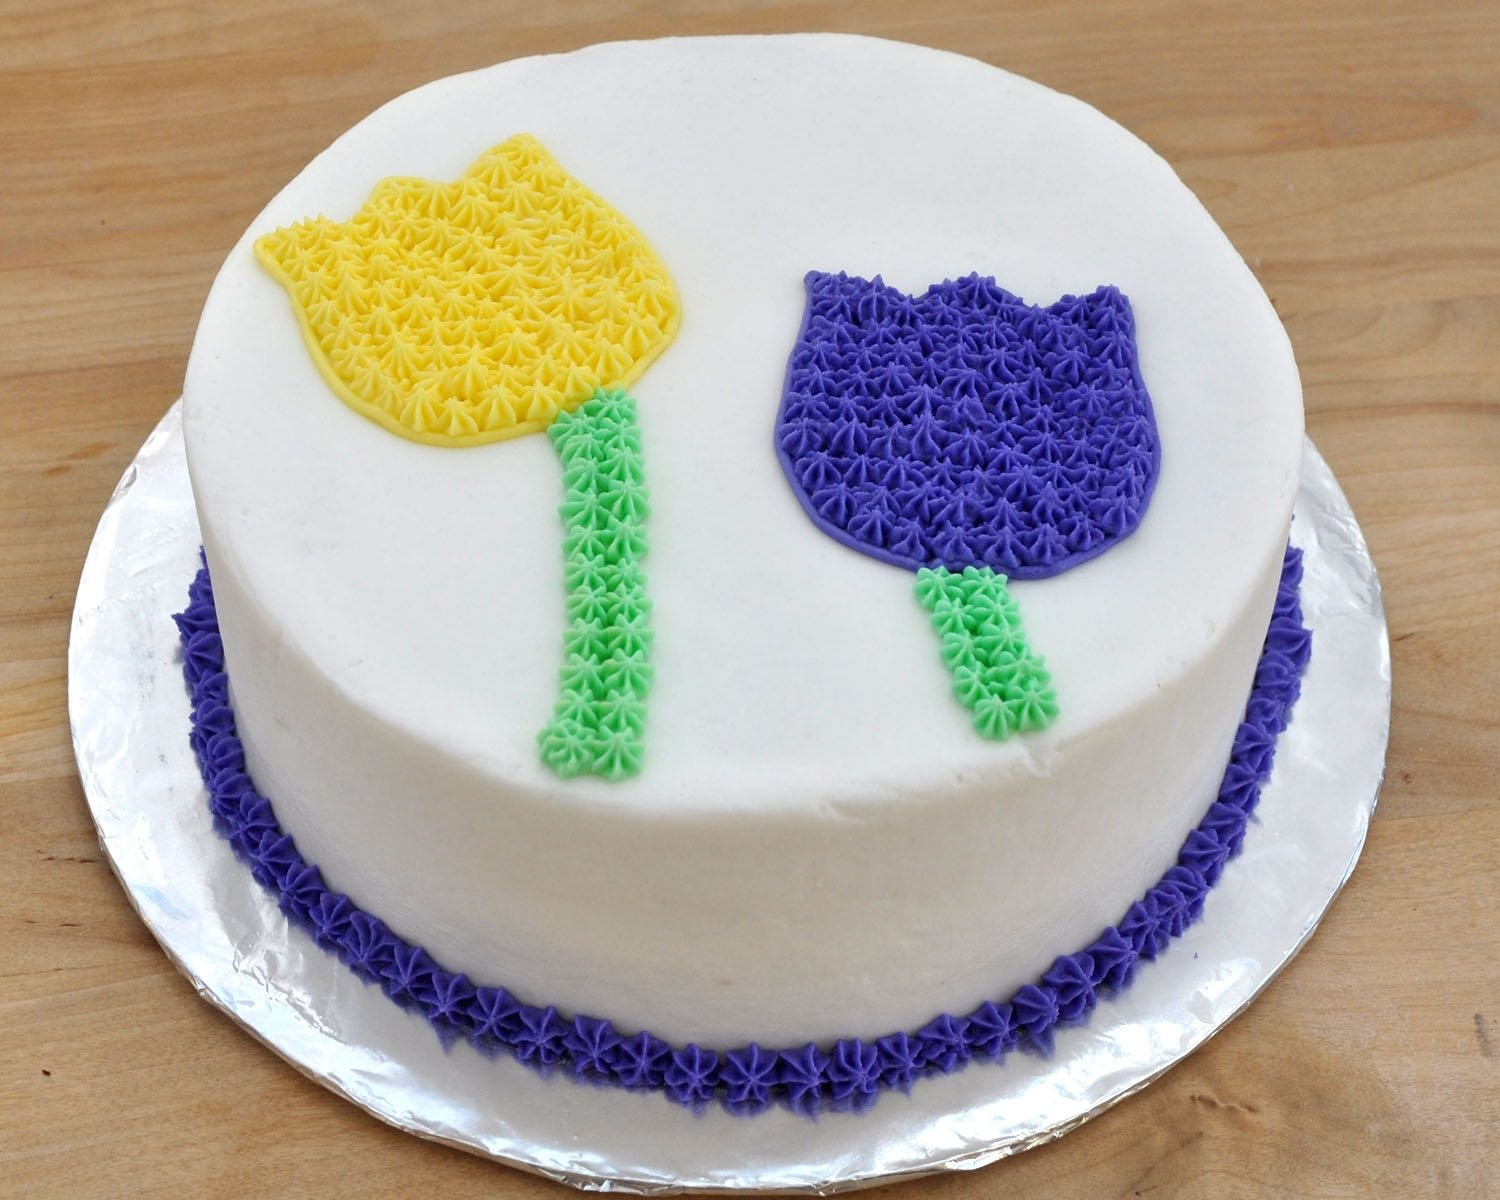 10 Perfect Simple Cake Decorating Ideas For Beginners beki cooks cake blog cake decorating 101 easy birthday cake 3 2020